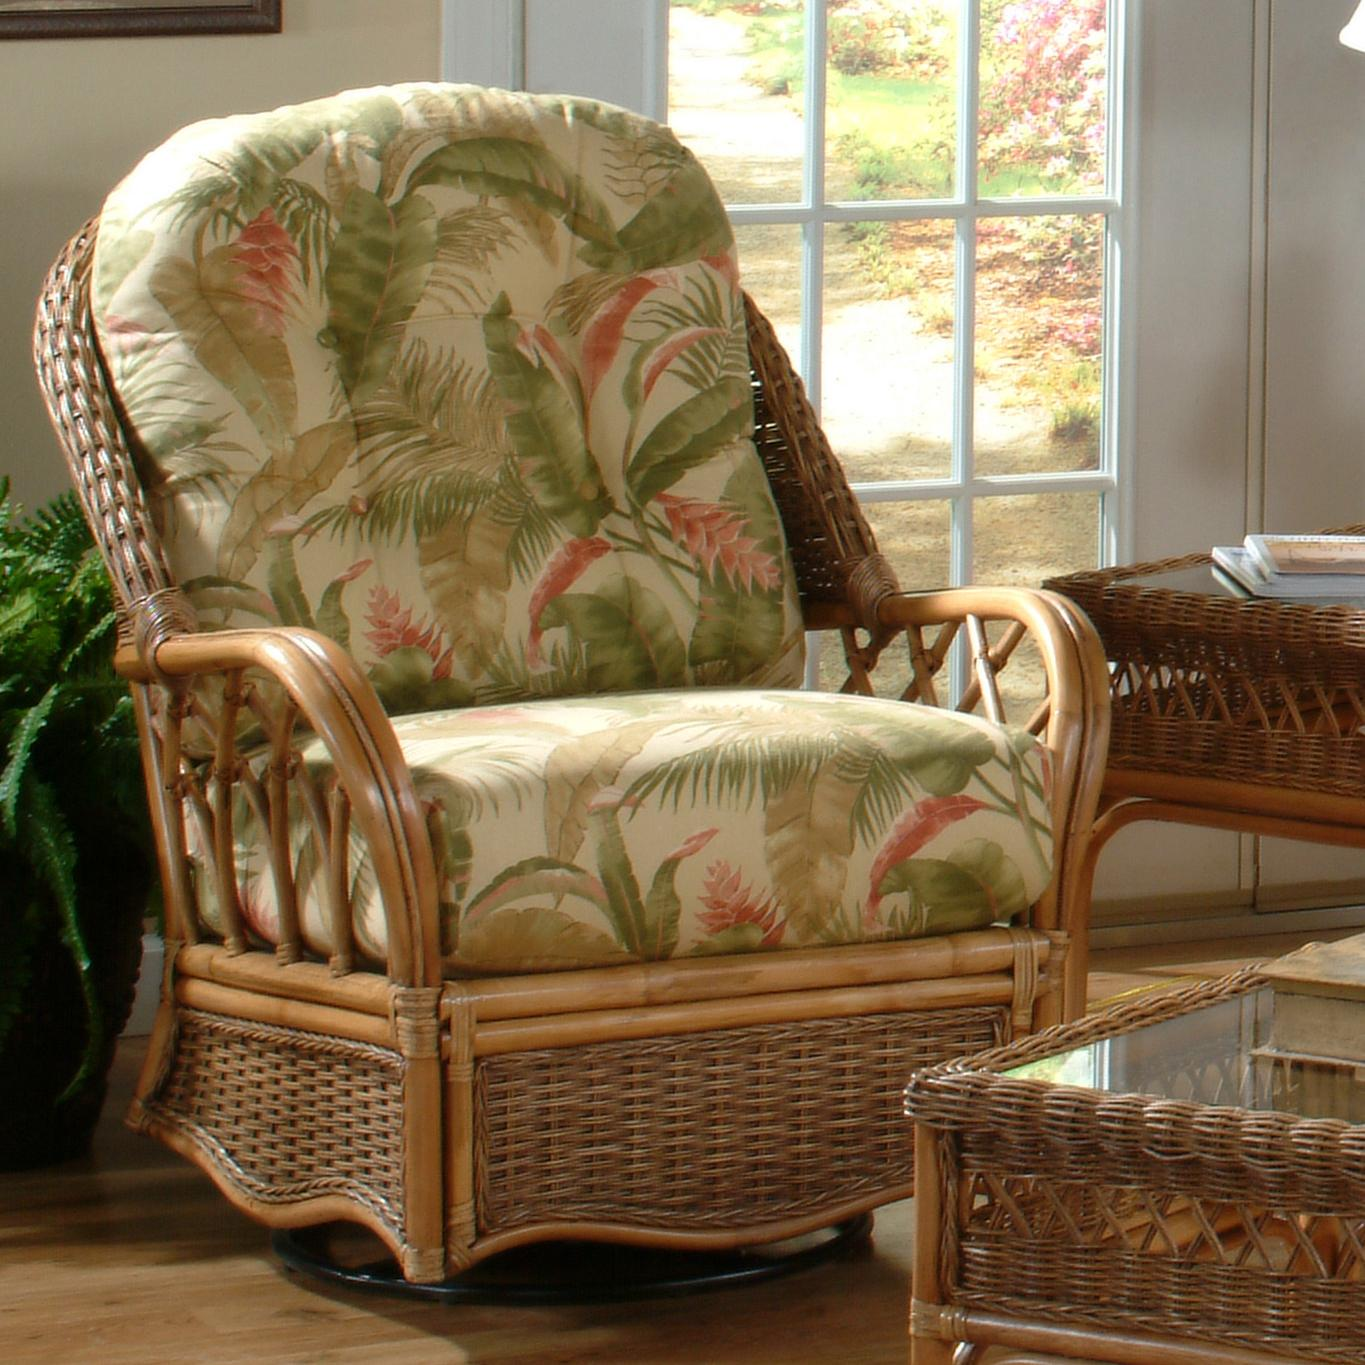 Everglade Mission Style Everglade Swivel Glider by Braxton Culler at Alison Craig Home Furnishings